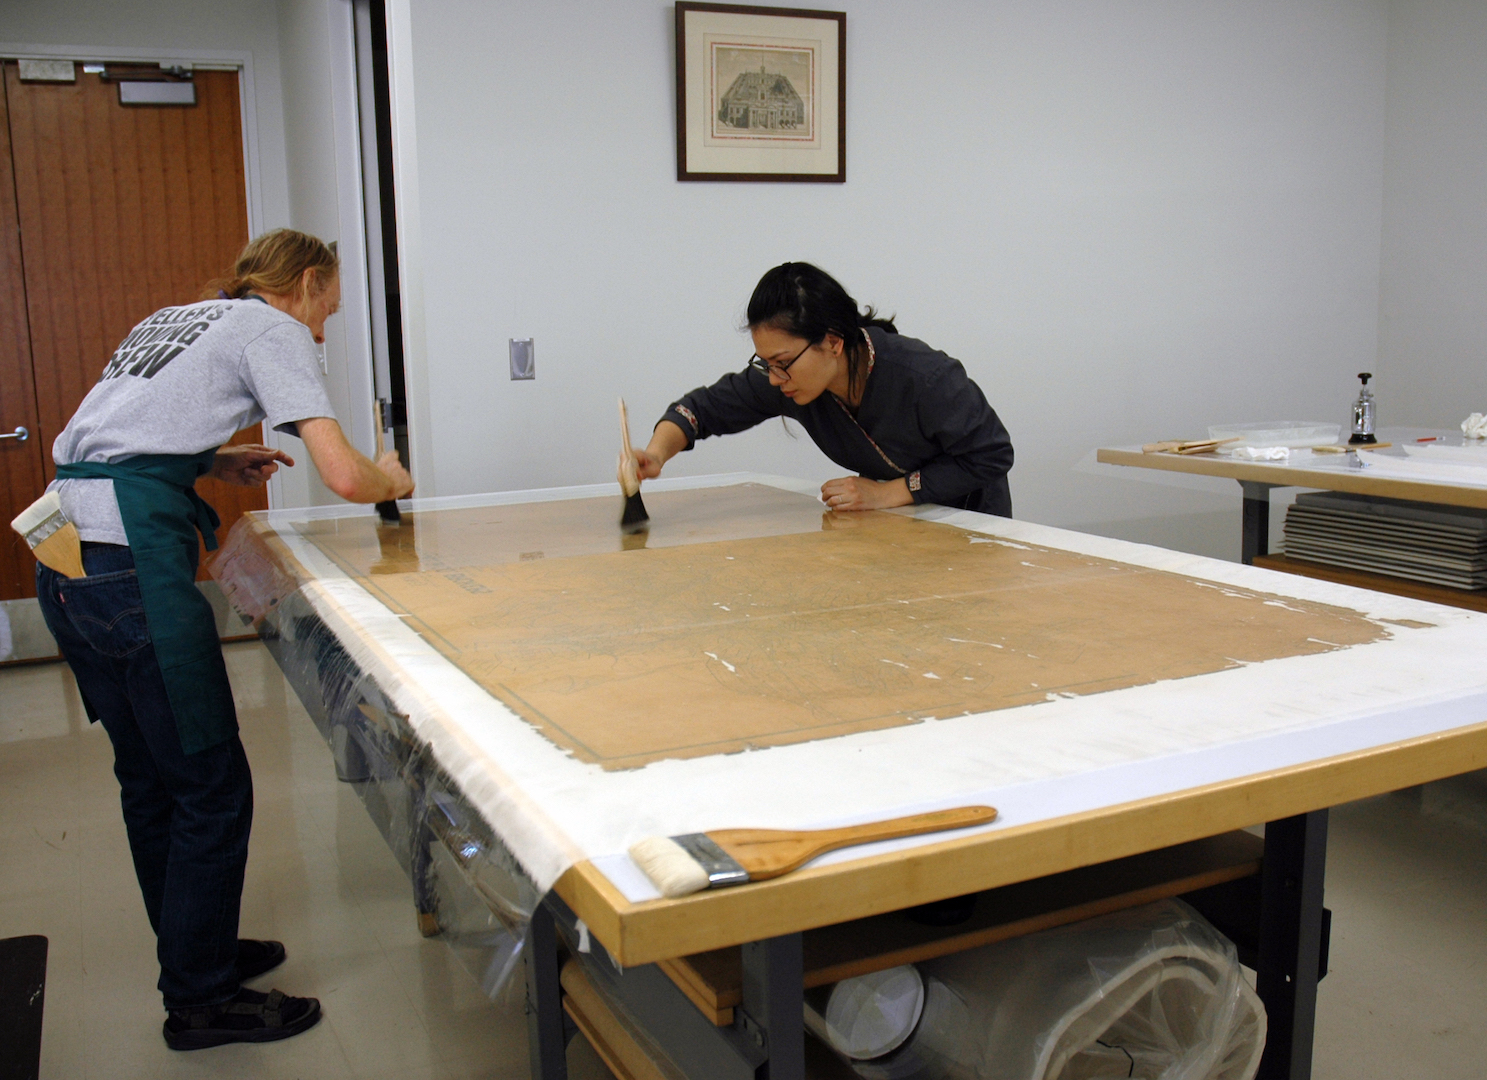 Jeff and Stacey using traditional Japanese smoothing brushes to remove air bubbles and ensure good adhesion between the lining and the map.